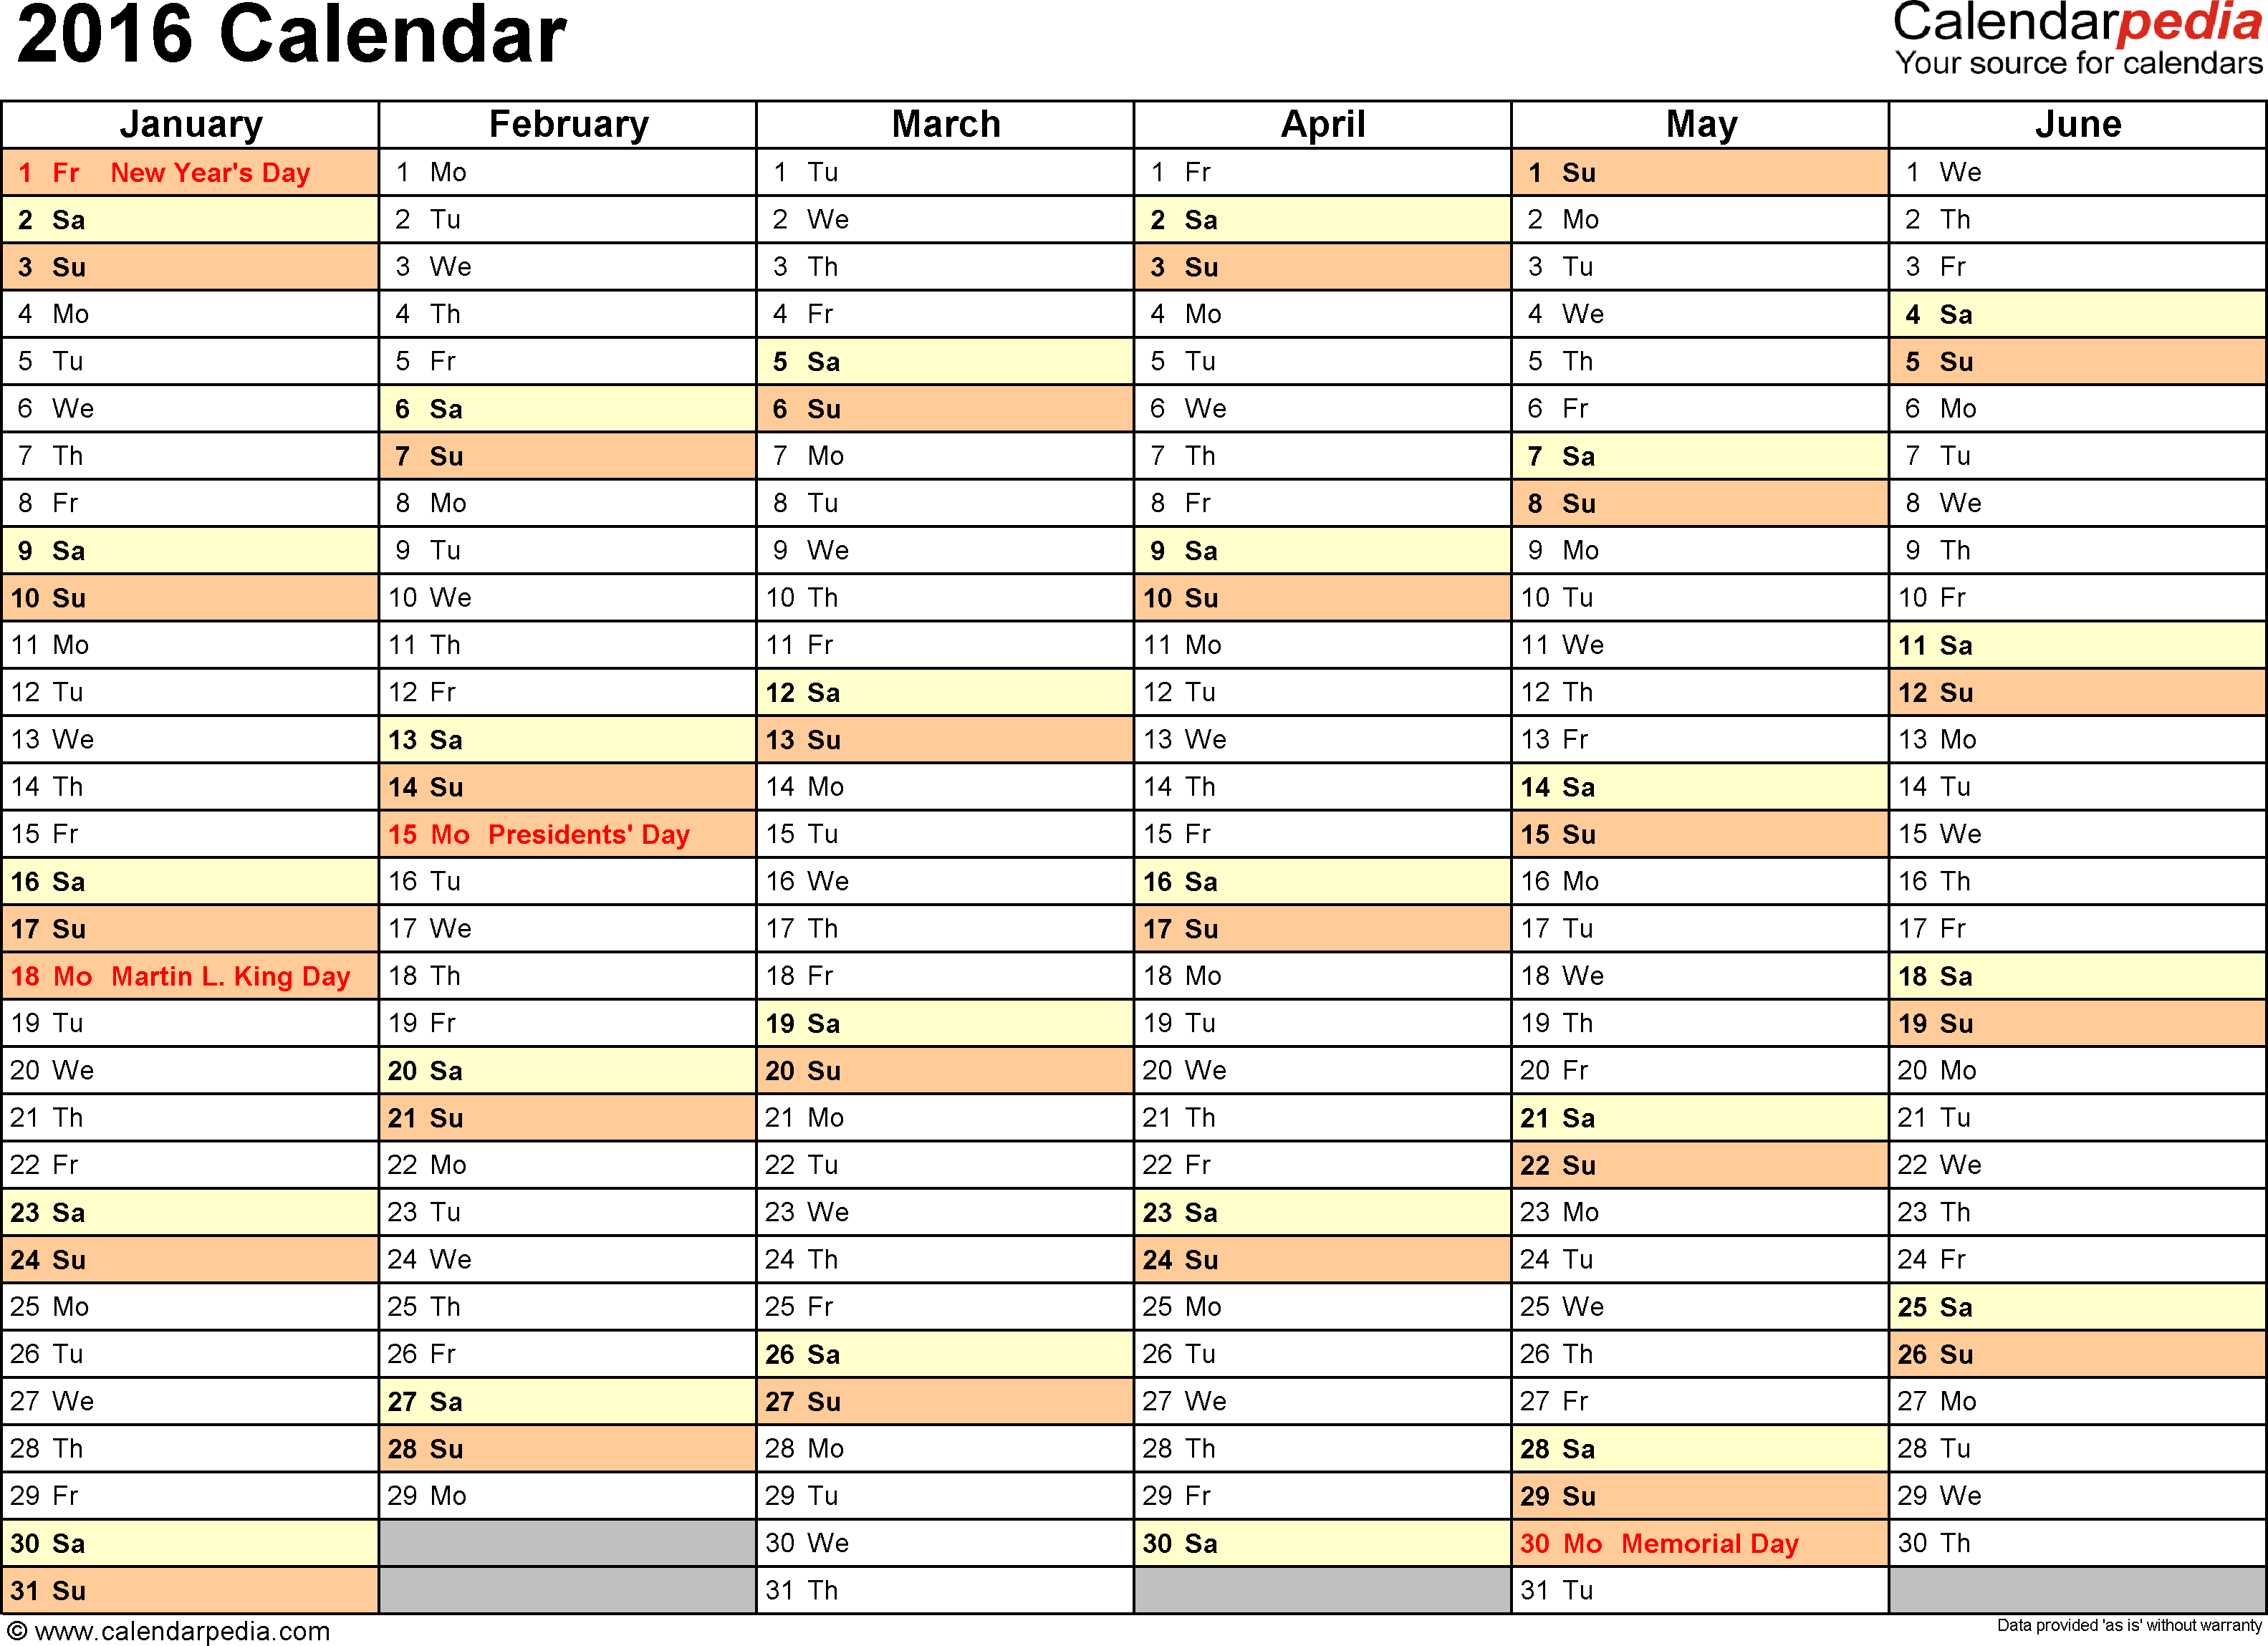 Ediblewildsus  Marvellous  Calendar  Download  Free Printable Excel Templates Xls With Glamorous Template   Calendar For Excel Months Horizontally  Pages Landscape Orientation With Enchanting Export Data From Access To Excel Also Excel Formula Builder In Addition Number Of Columns In Excel And Roc Curve Excel As Well As Percentile Formula In Excel  Additionally Number Of Sheets In Excel  From Calendarpediacom With Ediblewildsus  Glamorous  Calendar  Download  Free Printable Excel Templates Xls With Enchanting Template   Calendar For Excel Months Horizontally  Pages Landscape Orientation And Marvellous Export Data From Access To Excel Also Excel Formula Builder In Addition Number Of Columns In Excel From Calendarpediacom